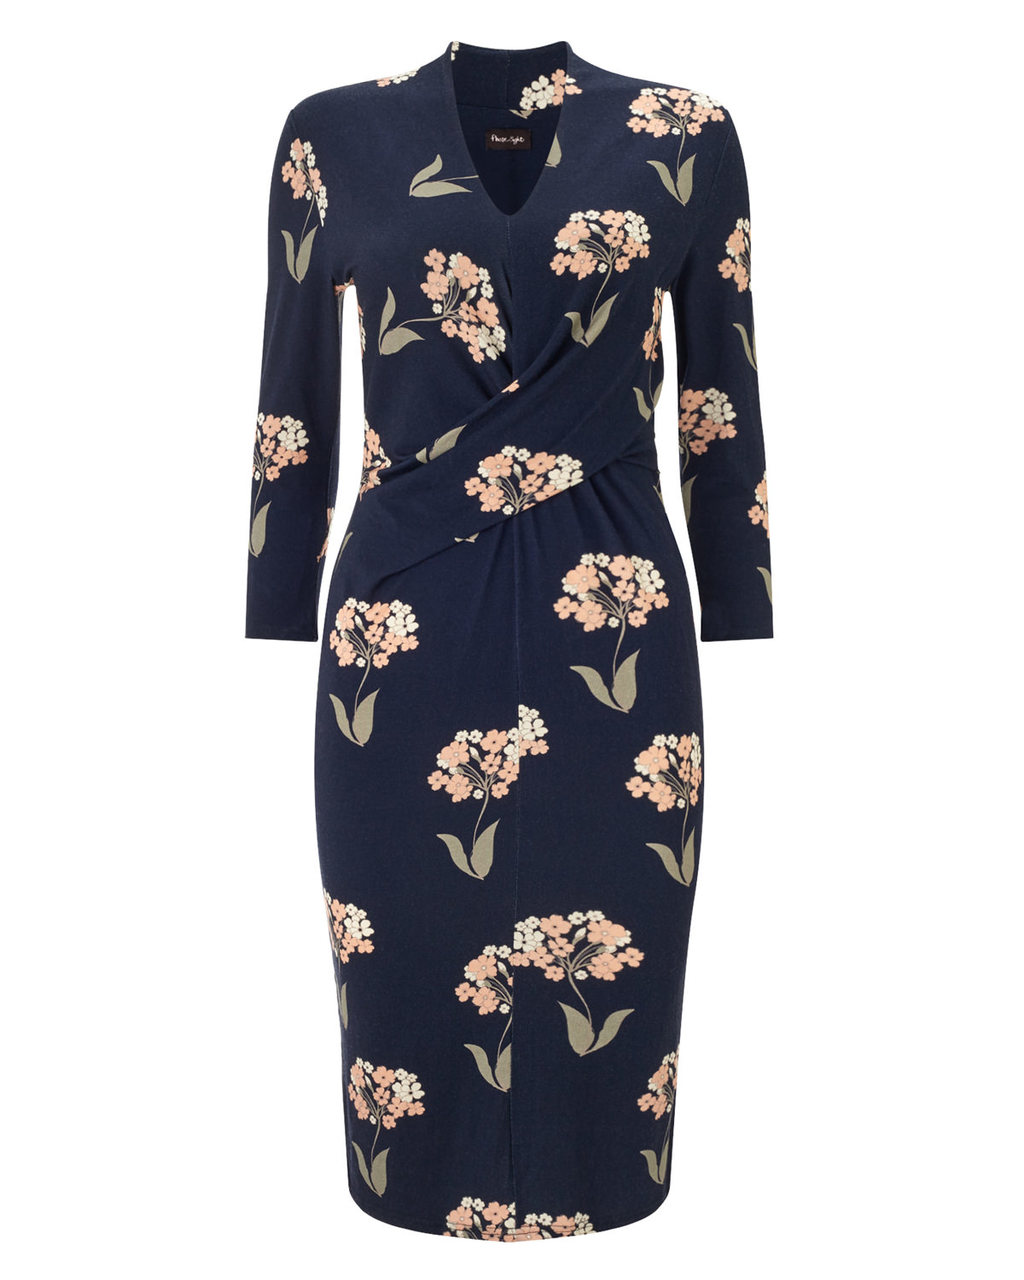 Monica Print Dress - style: shift; neckline: v-neck; fit: tight; predominant colour: navy; secondary colour: nude; length: on the knee; fibres: viscose/rayon - stretch; occasions: occasion; sleeve length: long sleeve; sleeve style: standard; pattern type: fabric; pattern size: standard; pattern: florals; texture group: jersey - stretchy/drapey; multicoloured: multicoloured; season: a/w 2015; wardrobe: event